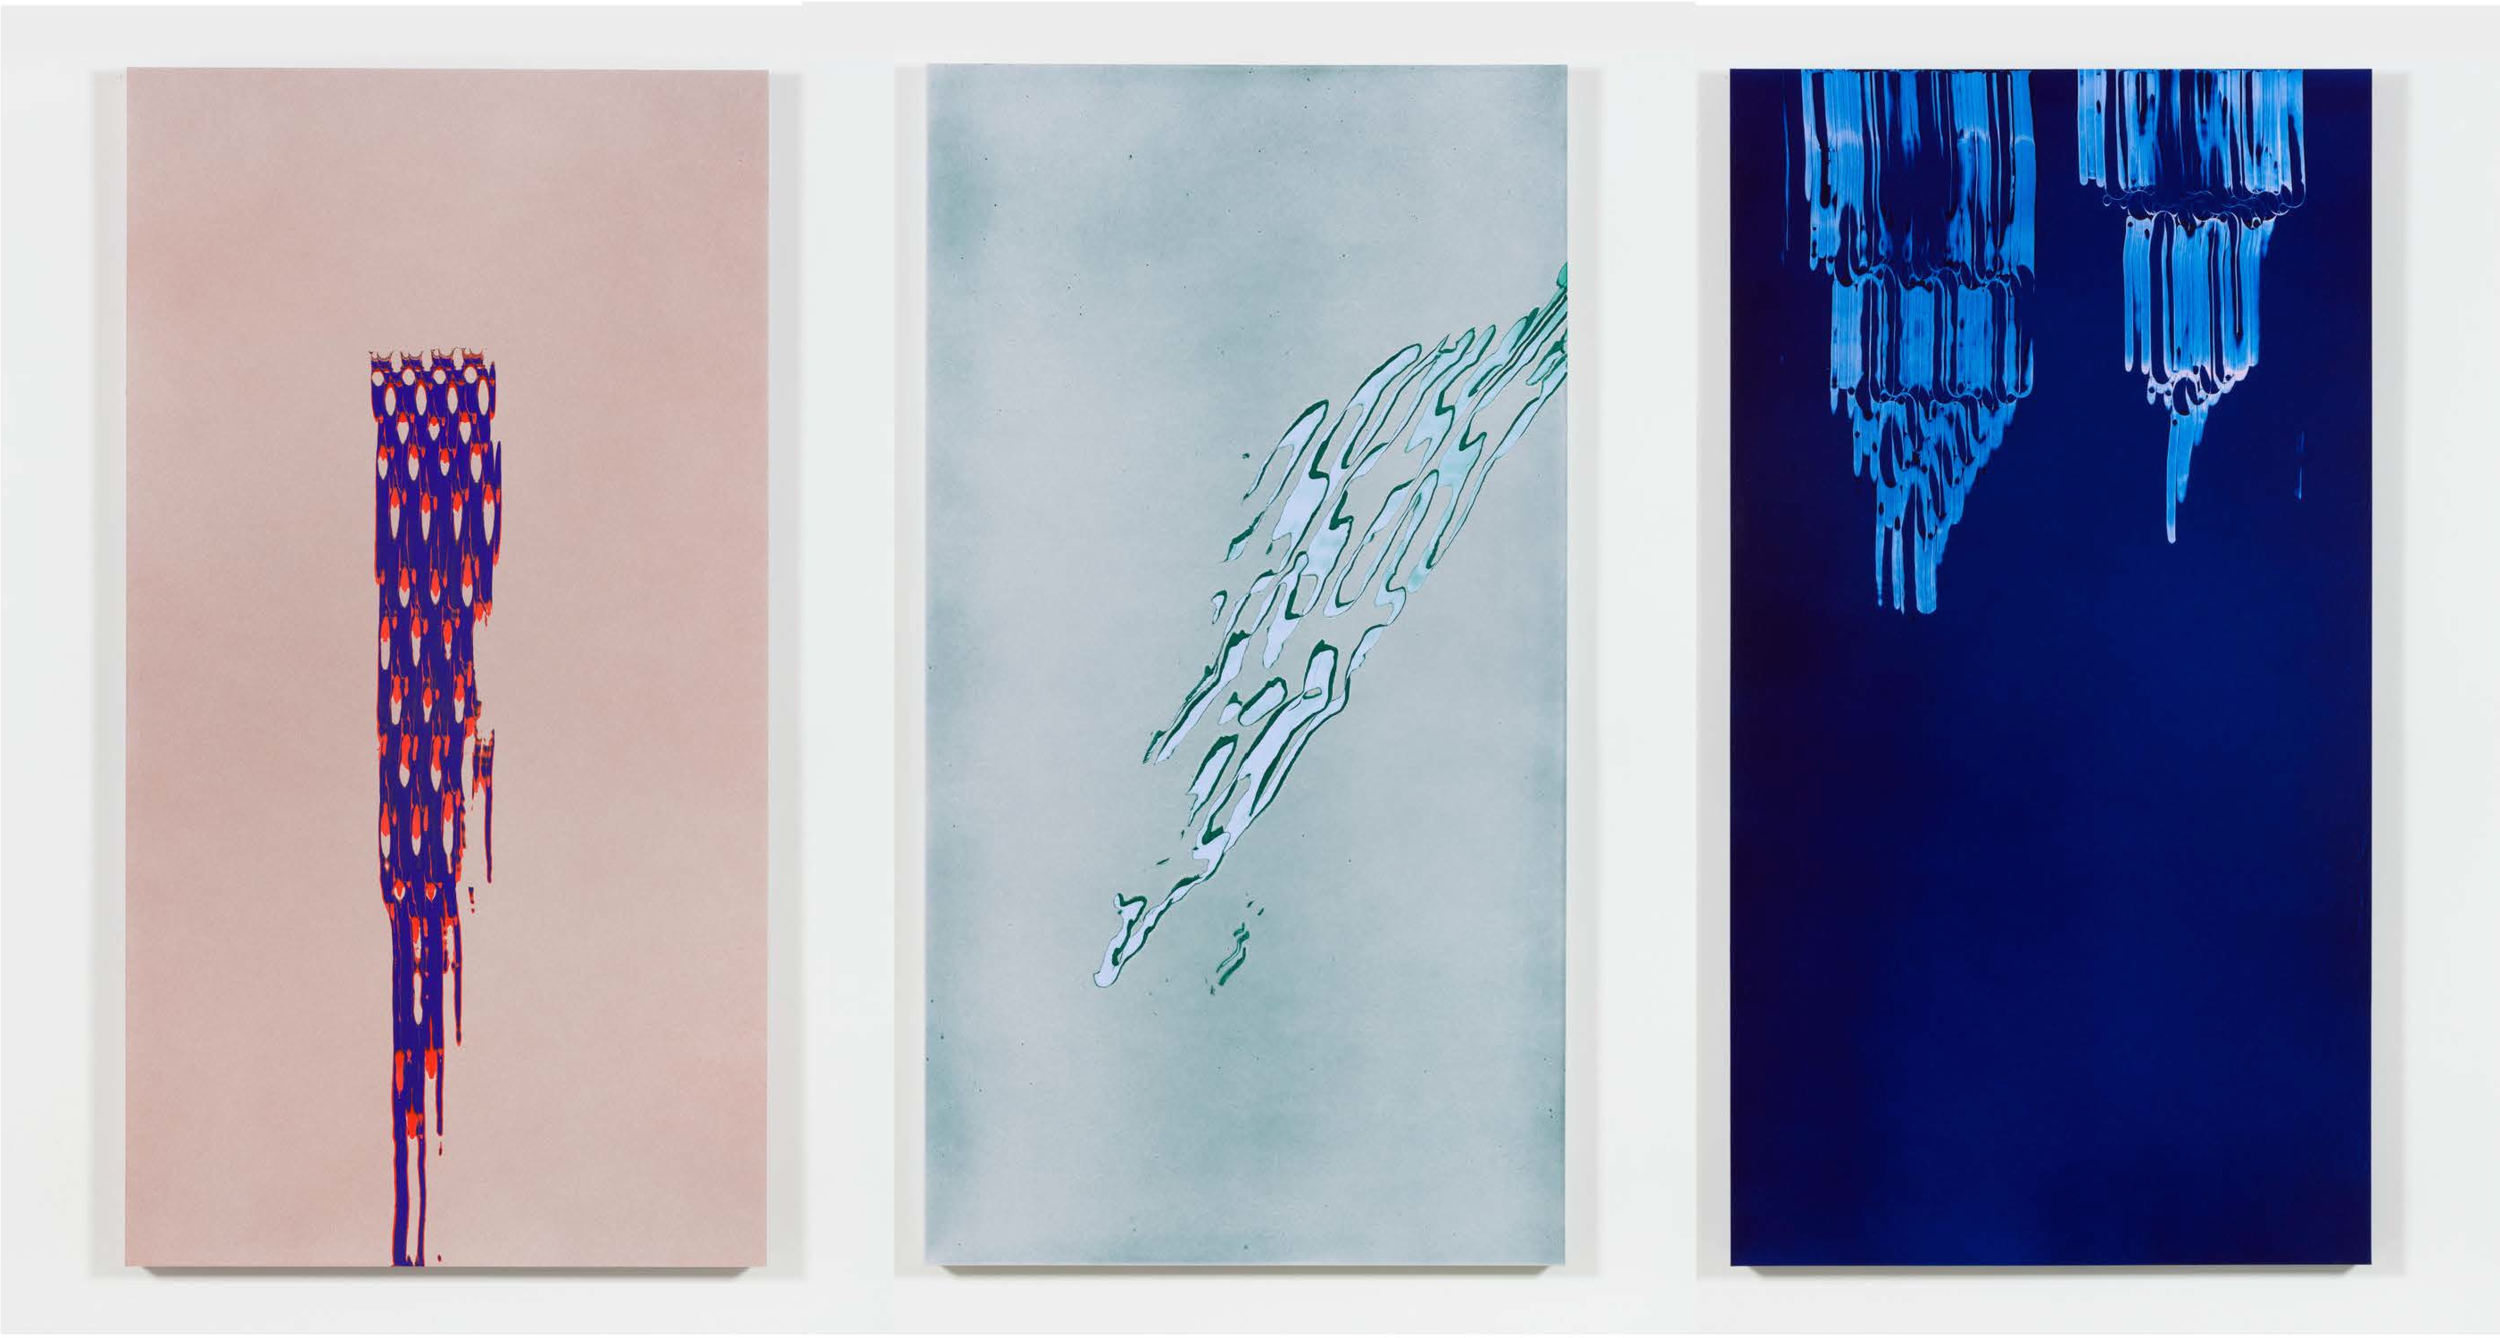 Works from Tauba Auerbach's Projective Instruments exhibition